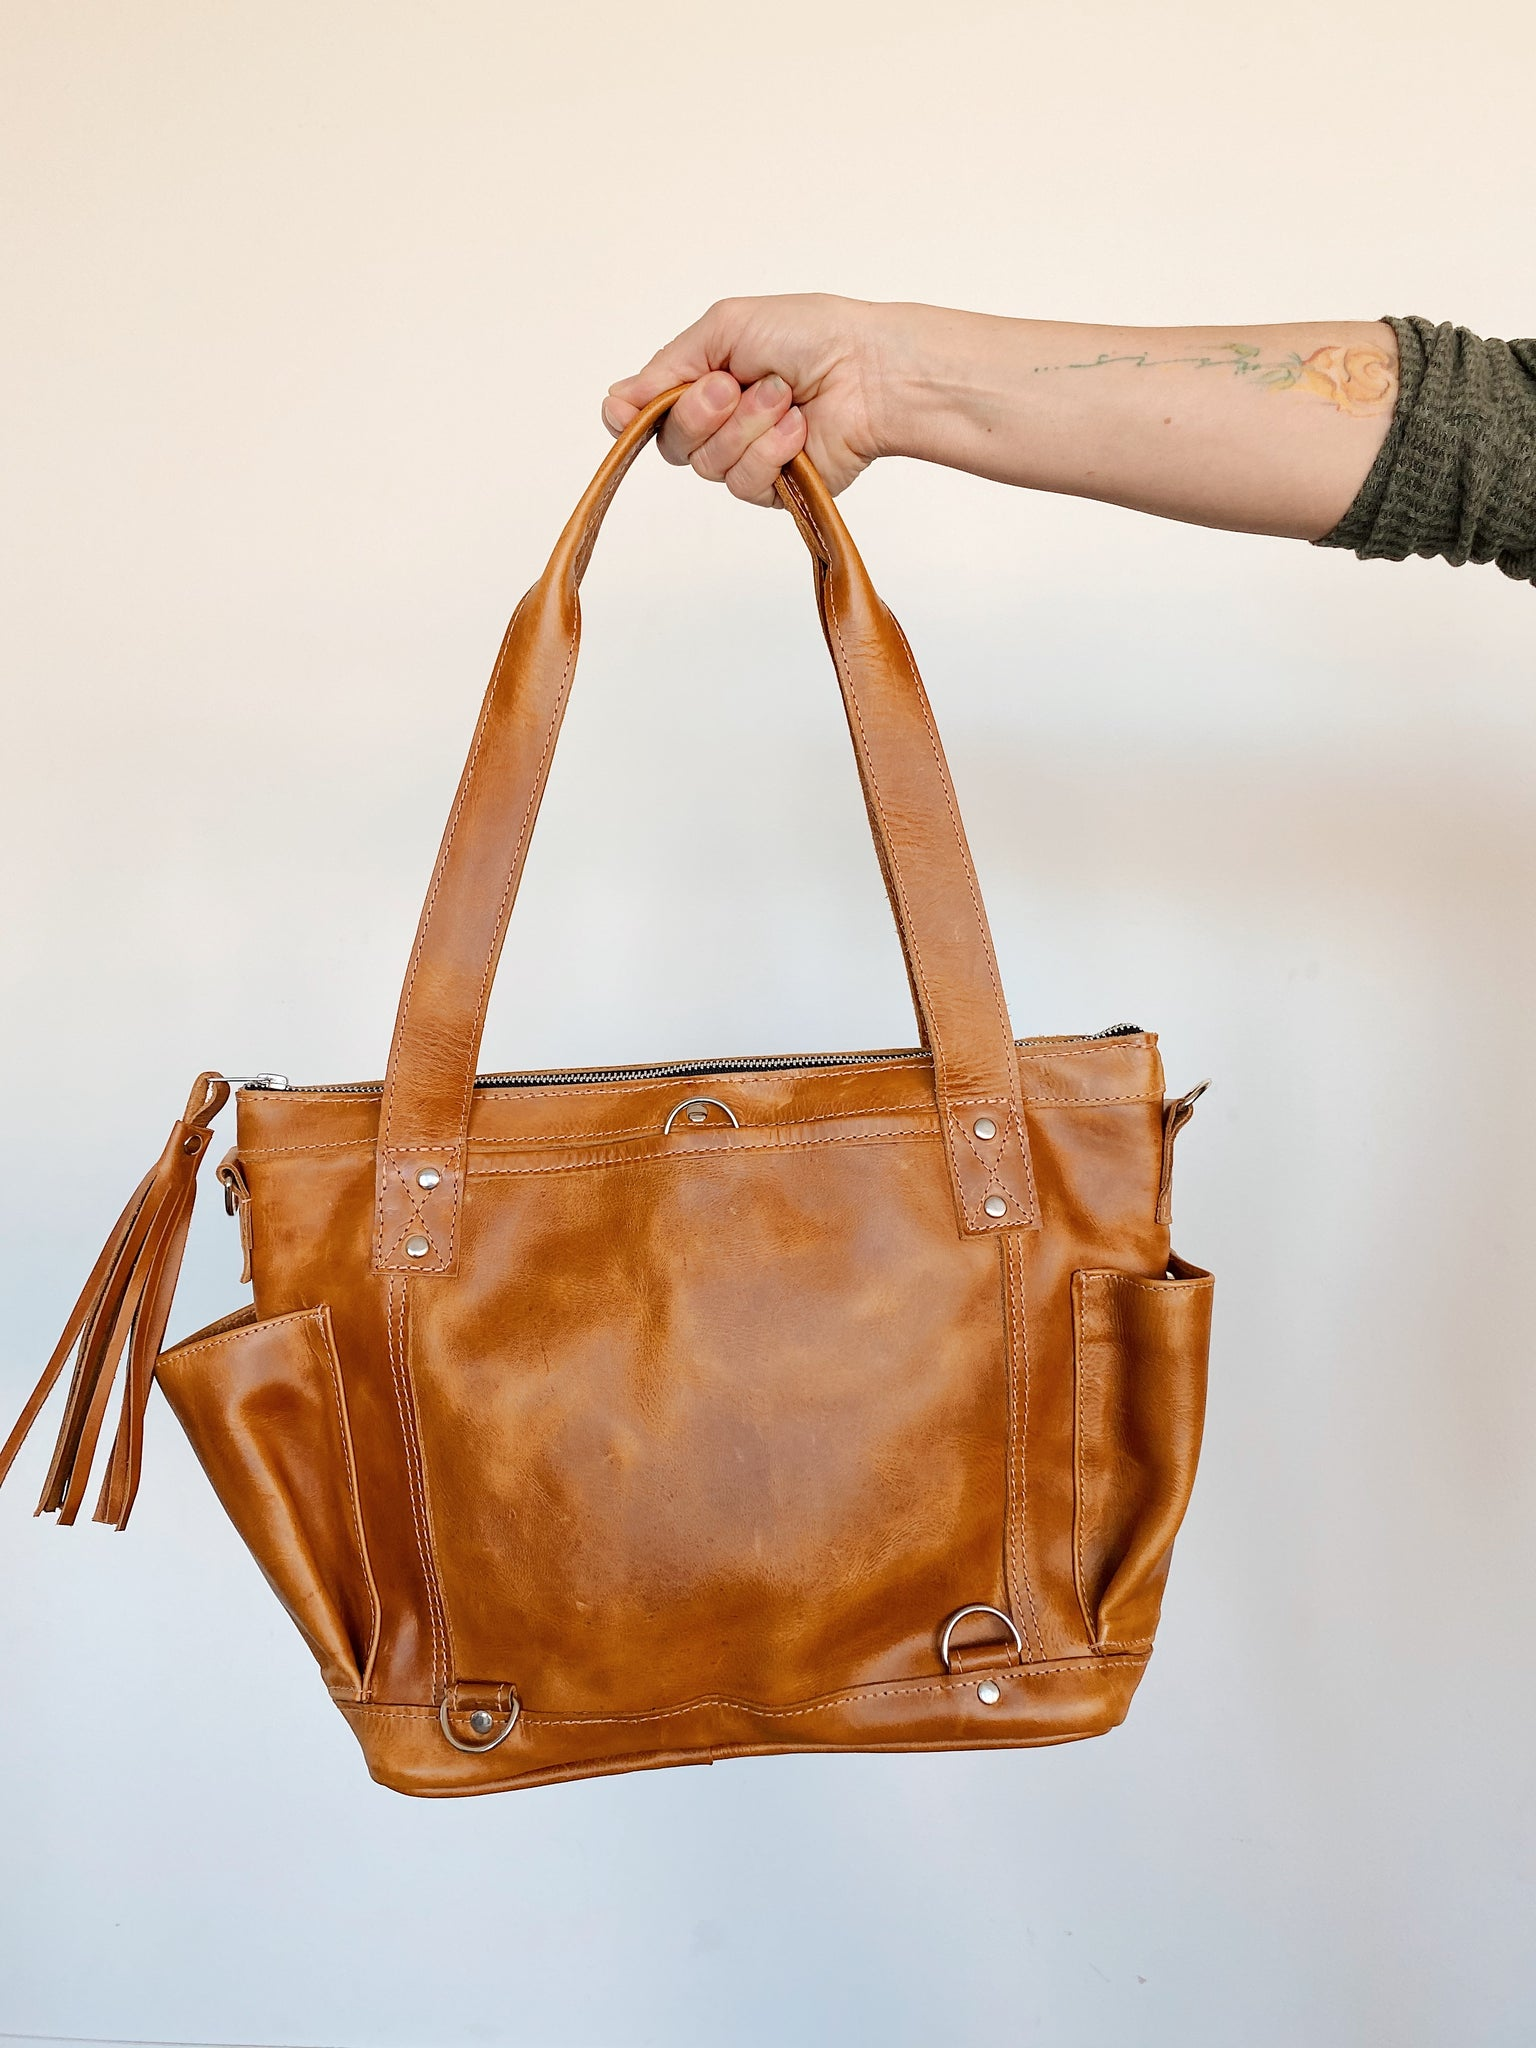 Lawson Convertible Bag